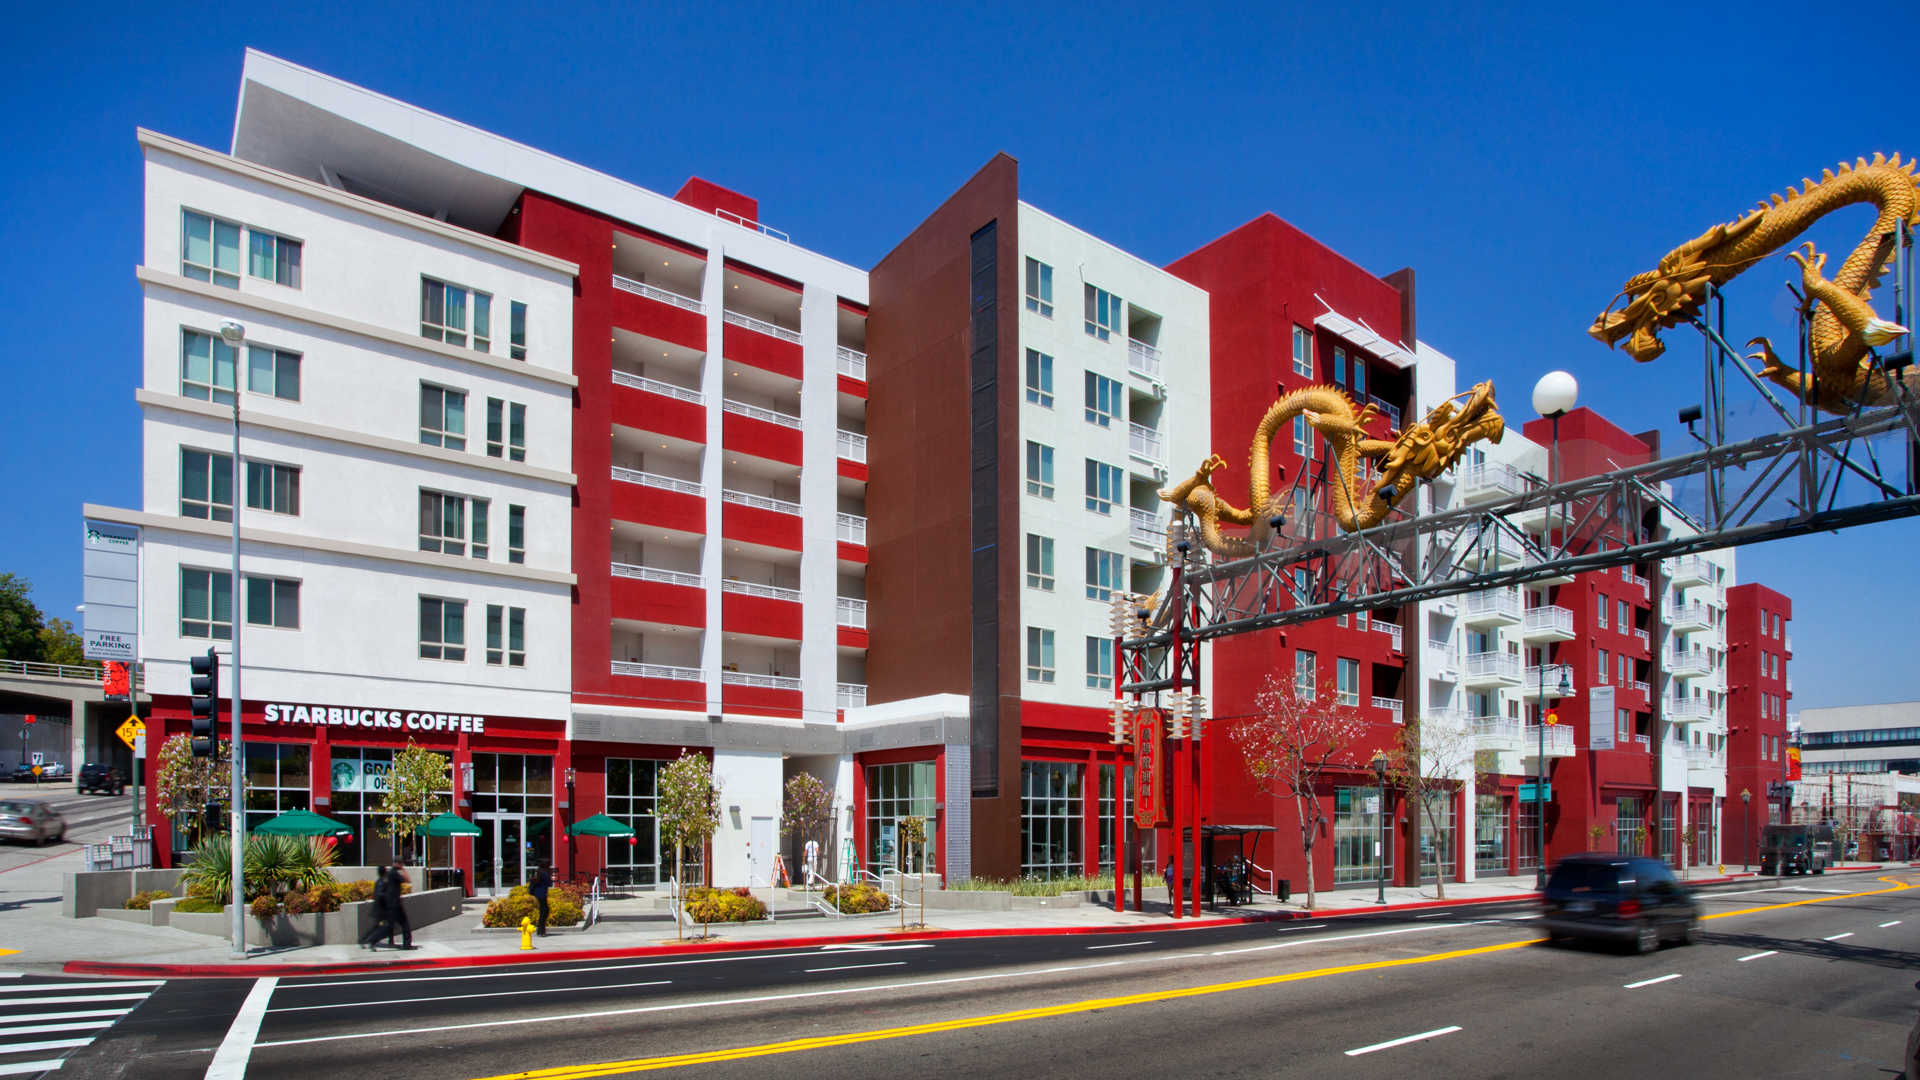 jia apartments in chinatown los angeles 639 n broadway